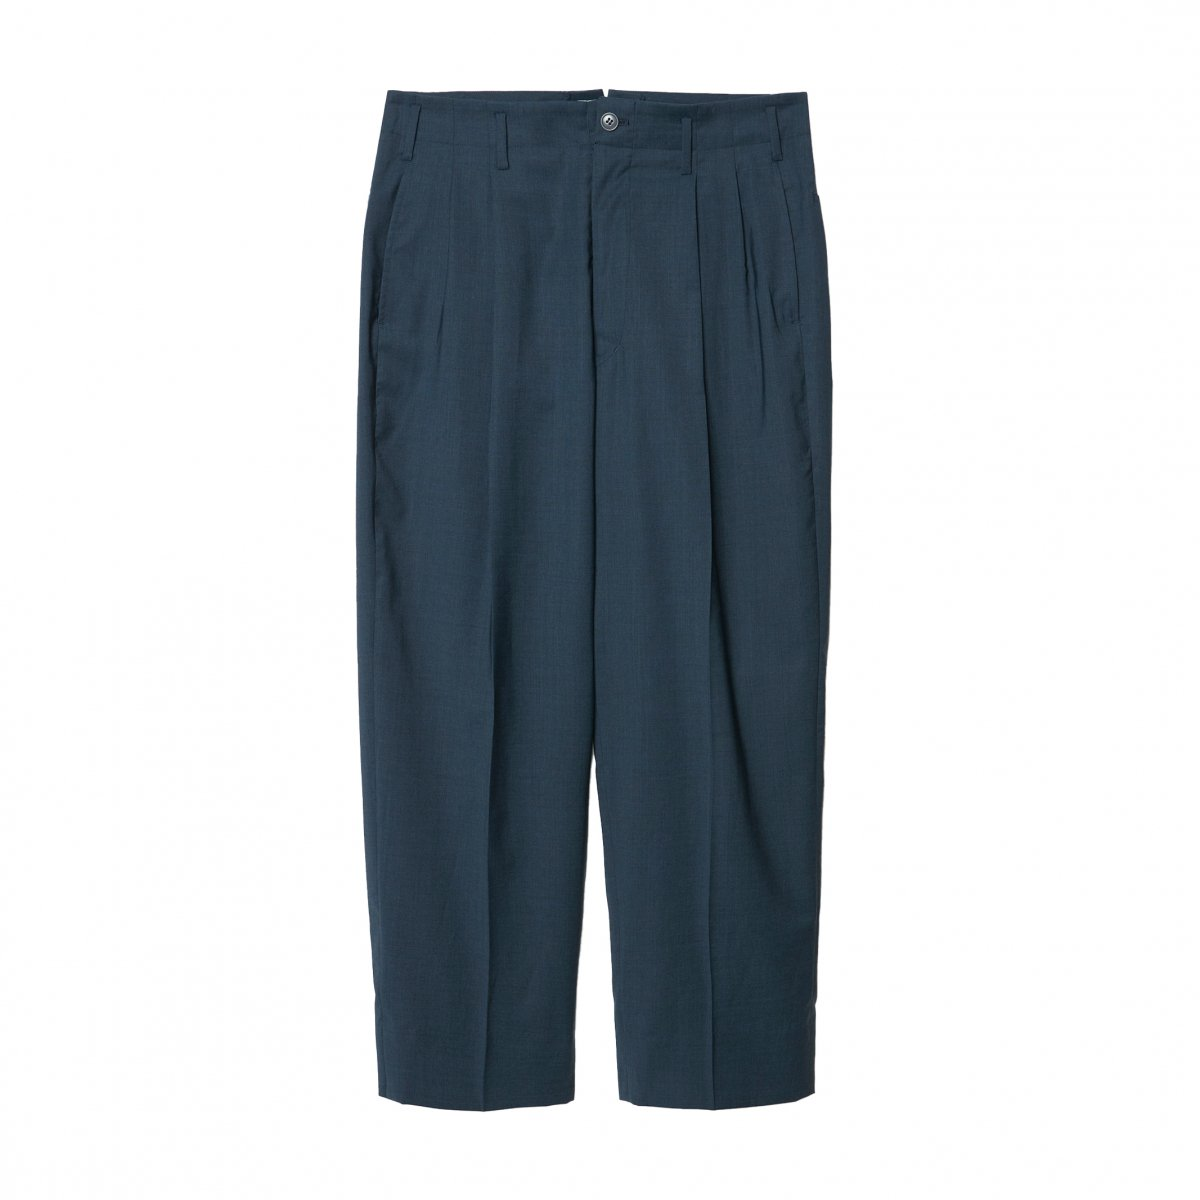 <img class='new_mark_img1' src='https://img.shop-pro.jp/img/new/icons5.gif' style='border:none;display:inline;margin:0px;padding:0px;width:auto;' />ALBINO SUPER'100 TAPARED 2TUCK TROUSERS / BLUE